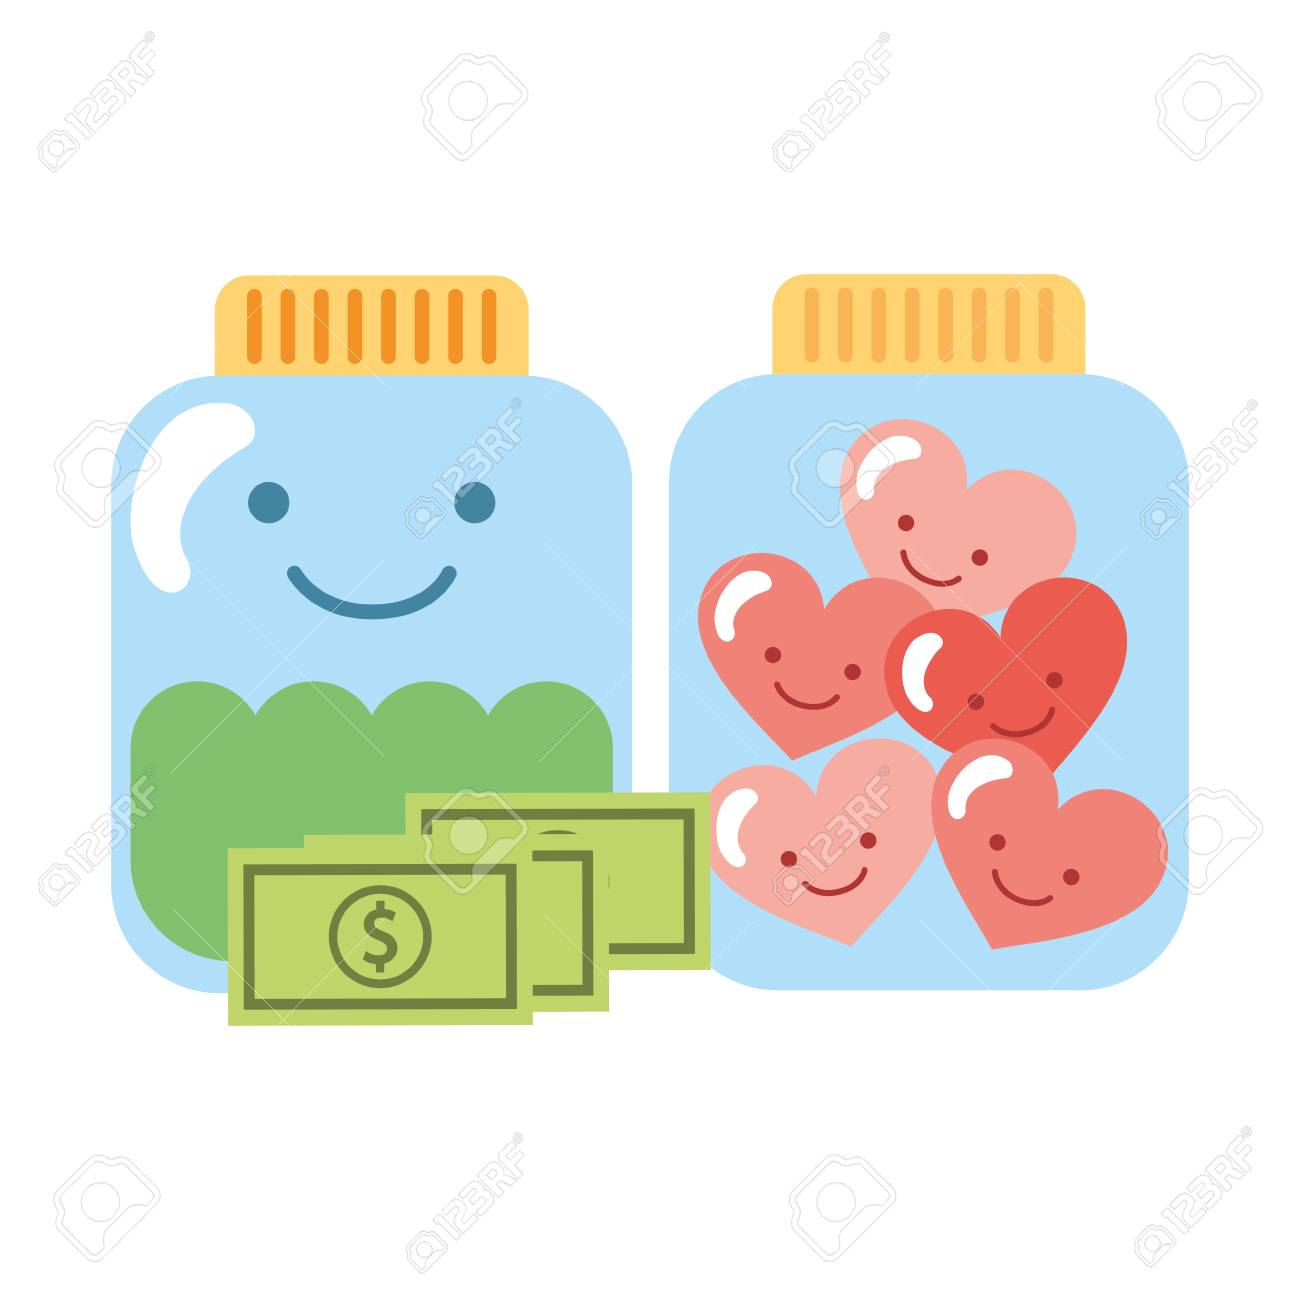 Glass Jar Cartoon Hearts And Money Charity Donation Vector Illustration Stock Photo Picture And Royalty Free Image Image 109697575